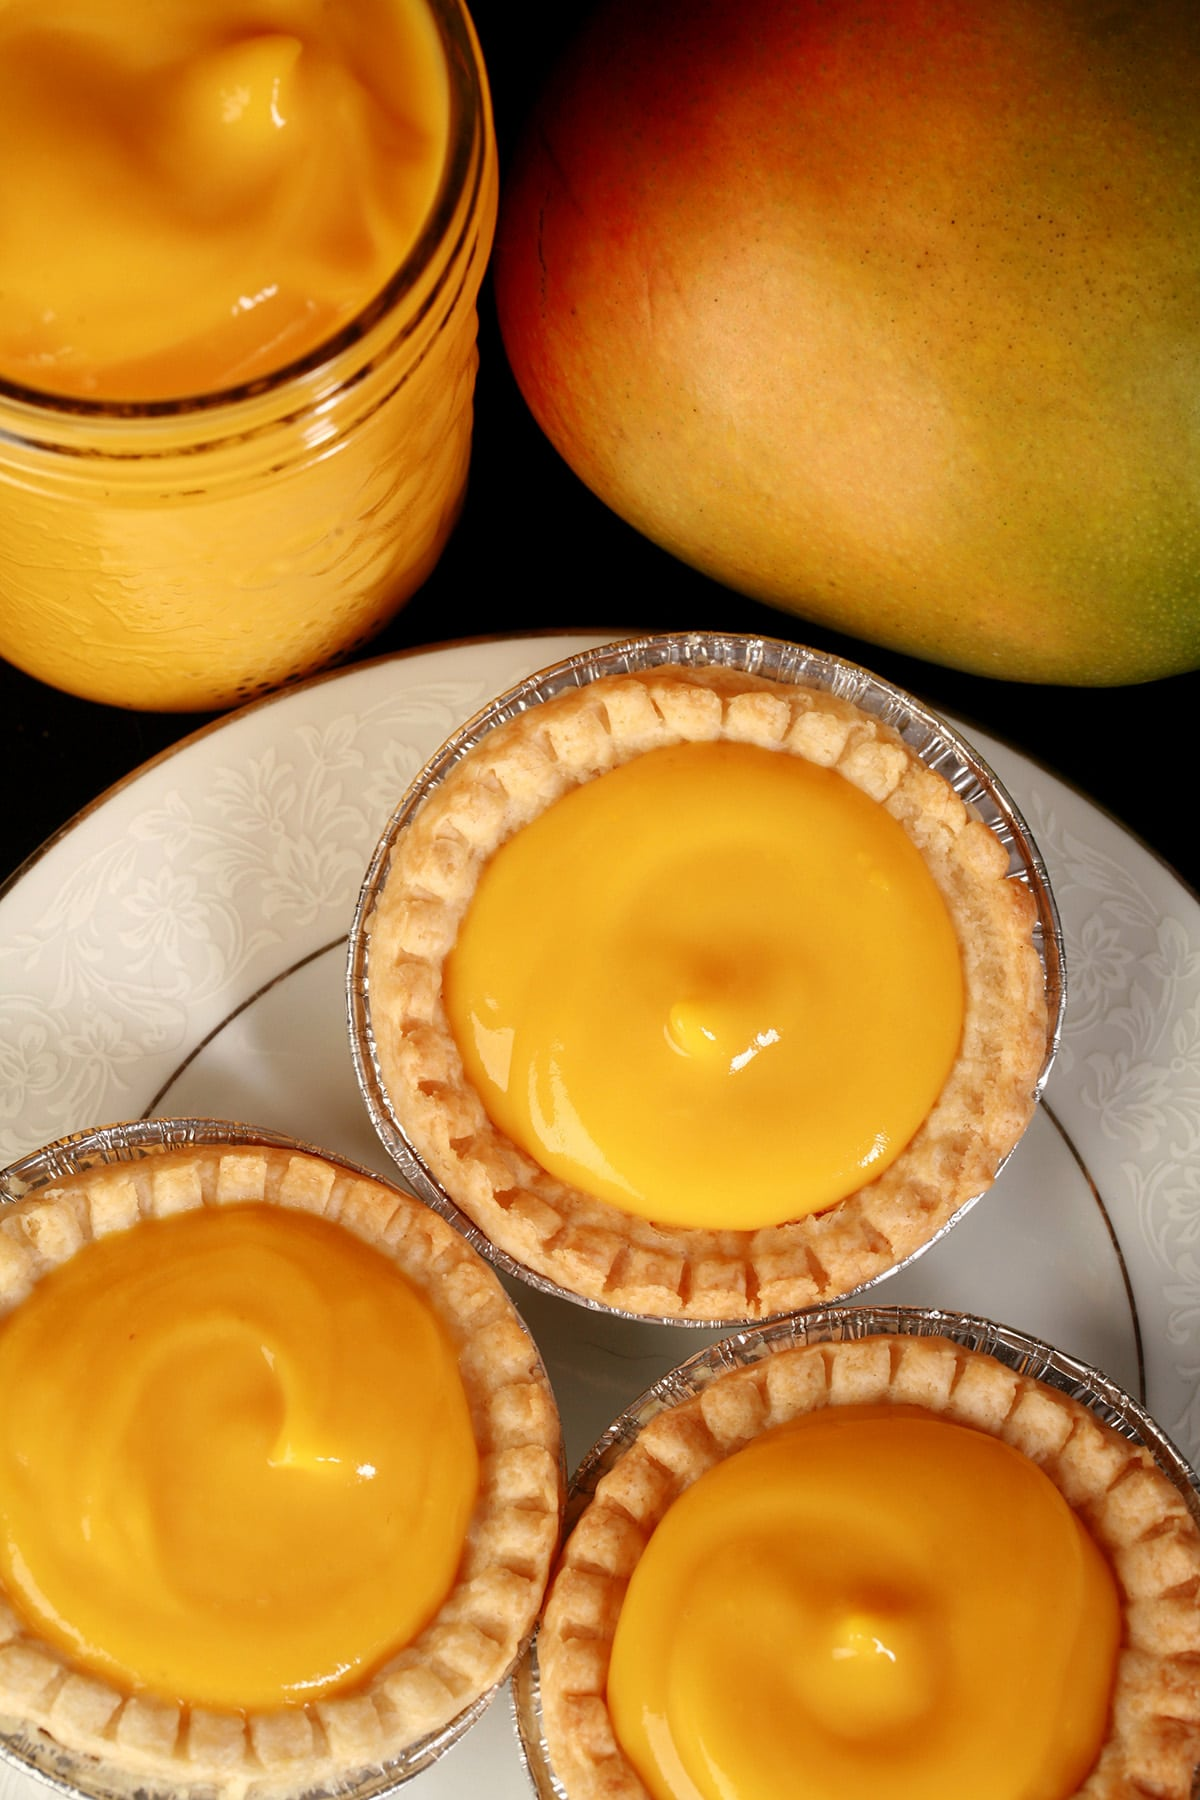 3 mango tarts on a plate, with a jar of mango curd and a mango behind the plate.